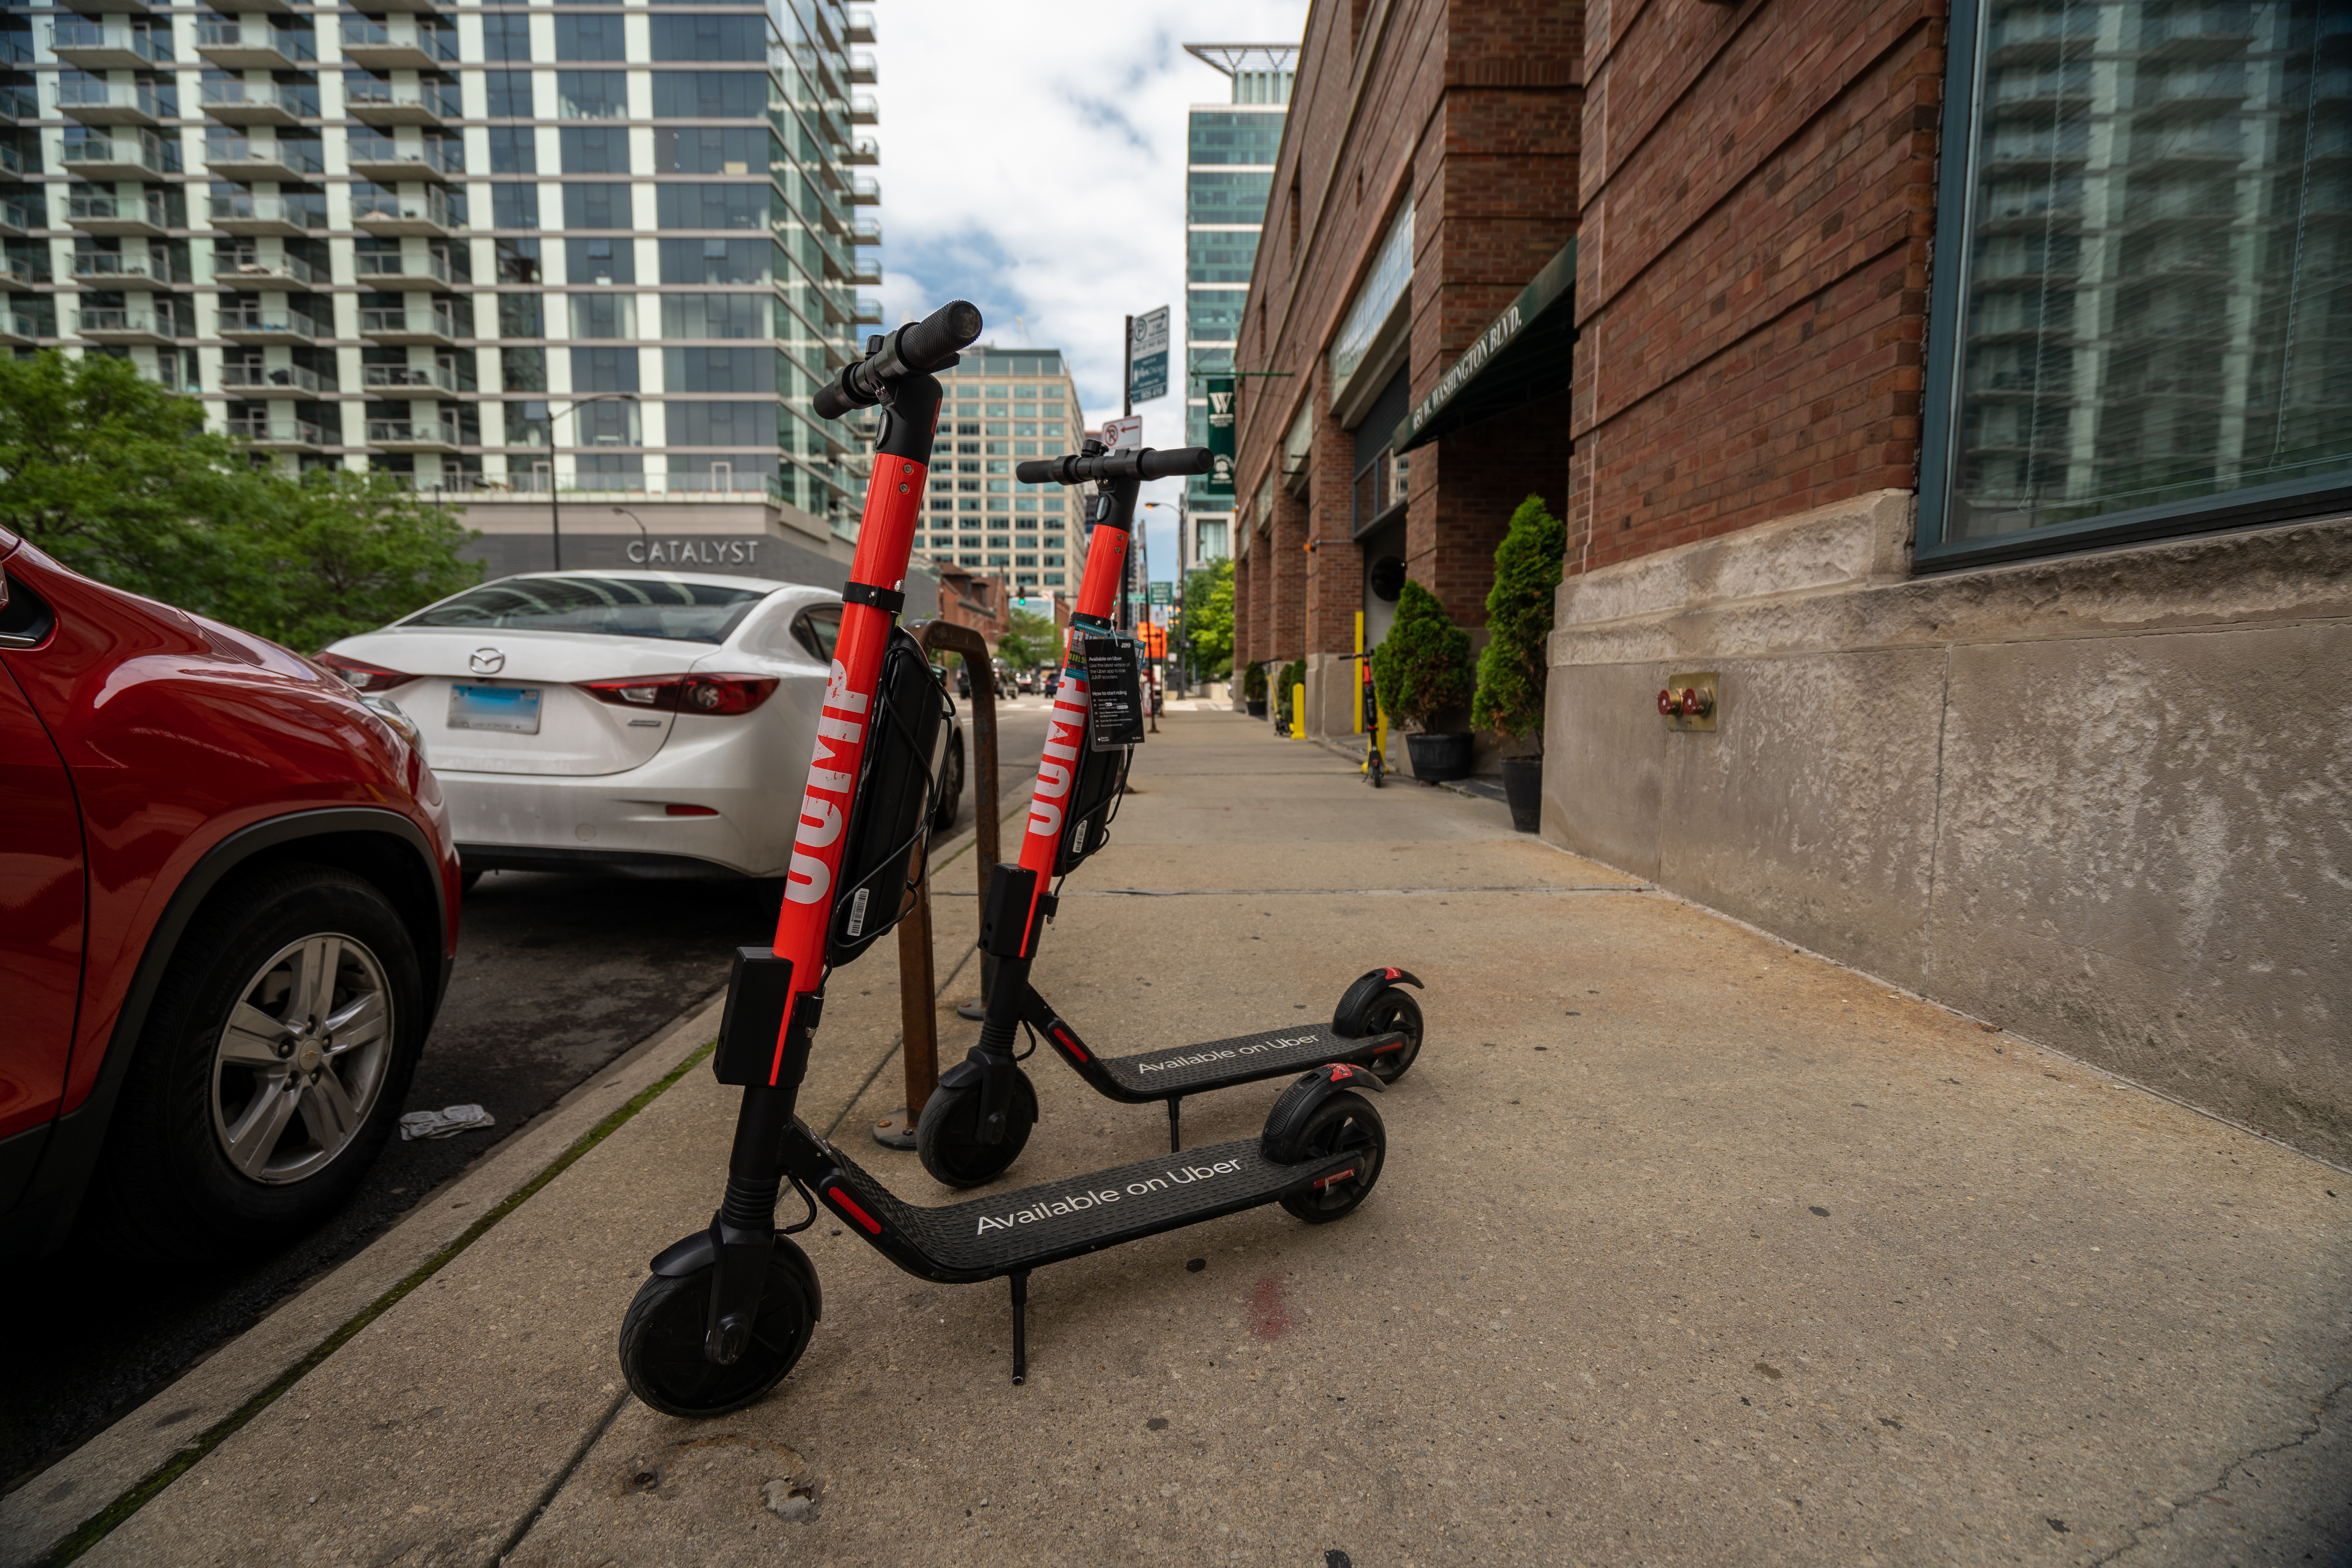 Scooter pilot is coming to an end, but some Chicagoans want them to stay